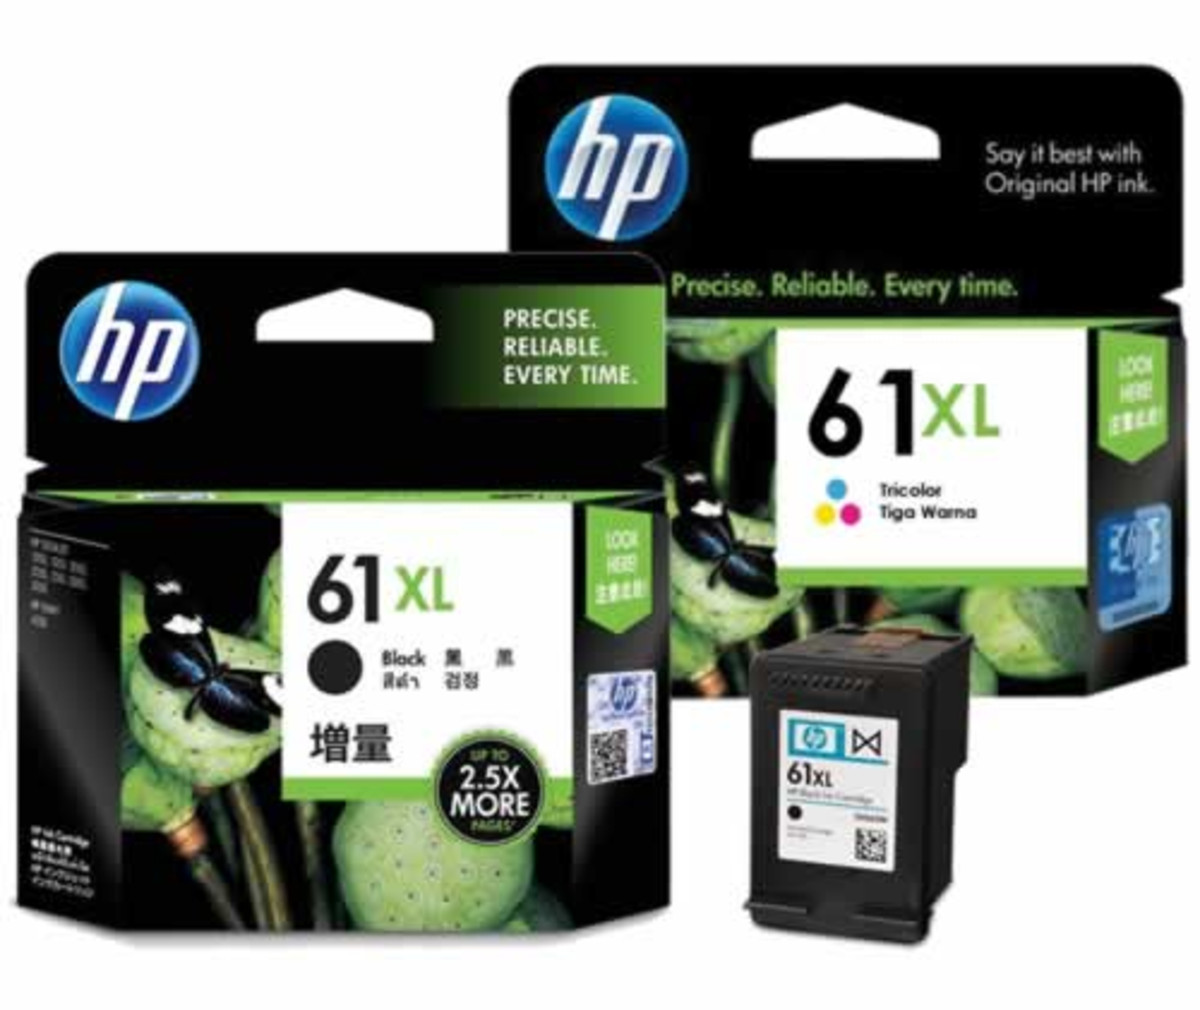 HP 61XL Black and Colour Ink Cartridge Combo Pack